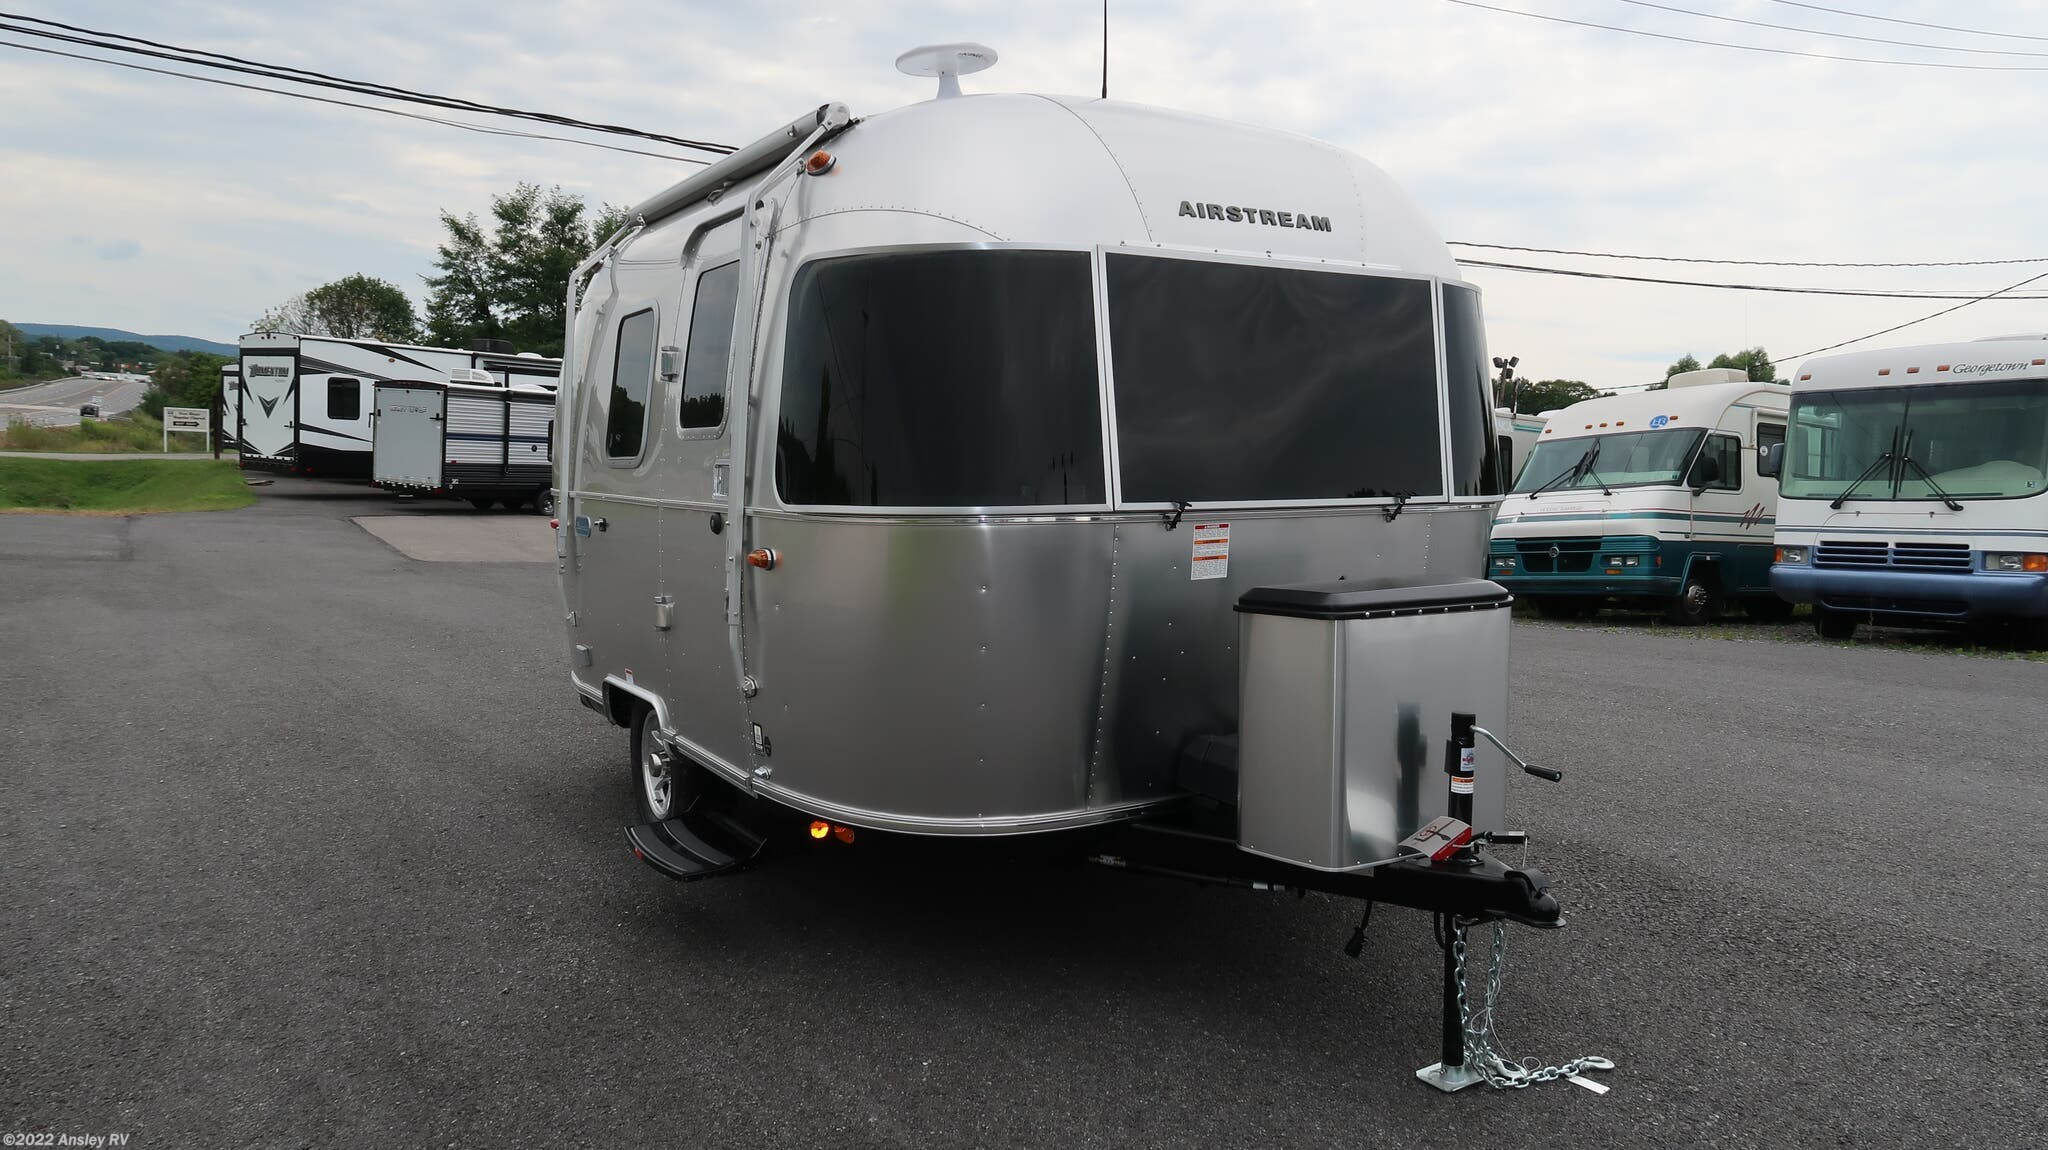 D0297-19 - 2020 Airstream Basecamp Basecamp X Travel Trailer